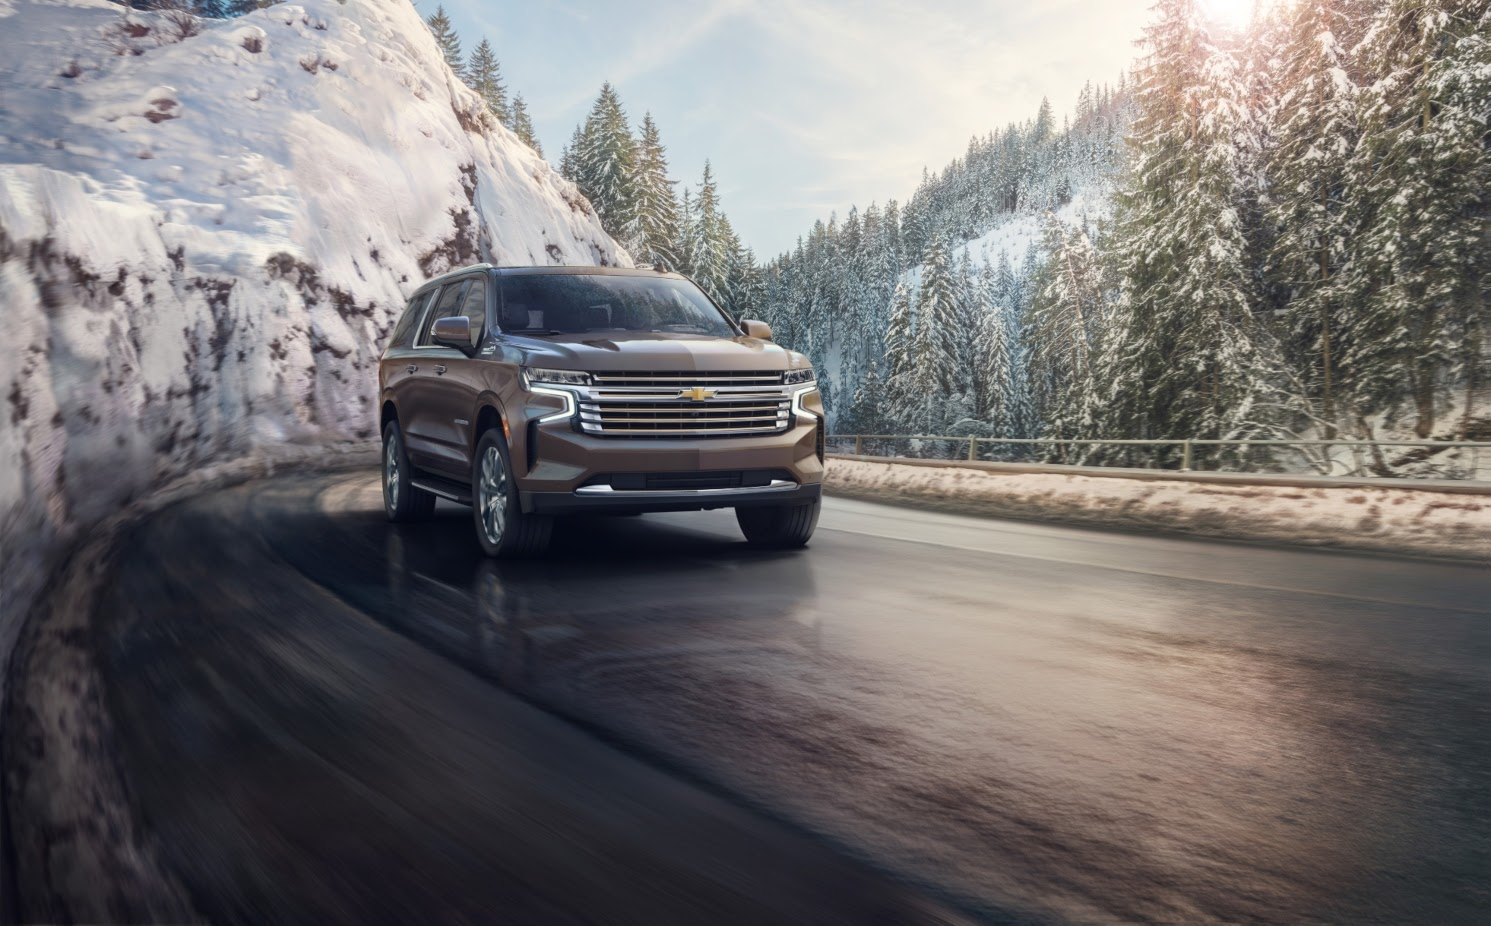 Top 5 Road Trip Features On The 2021 Chevy Suburban